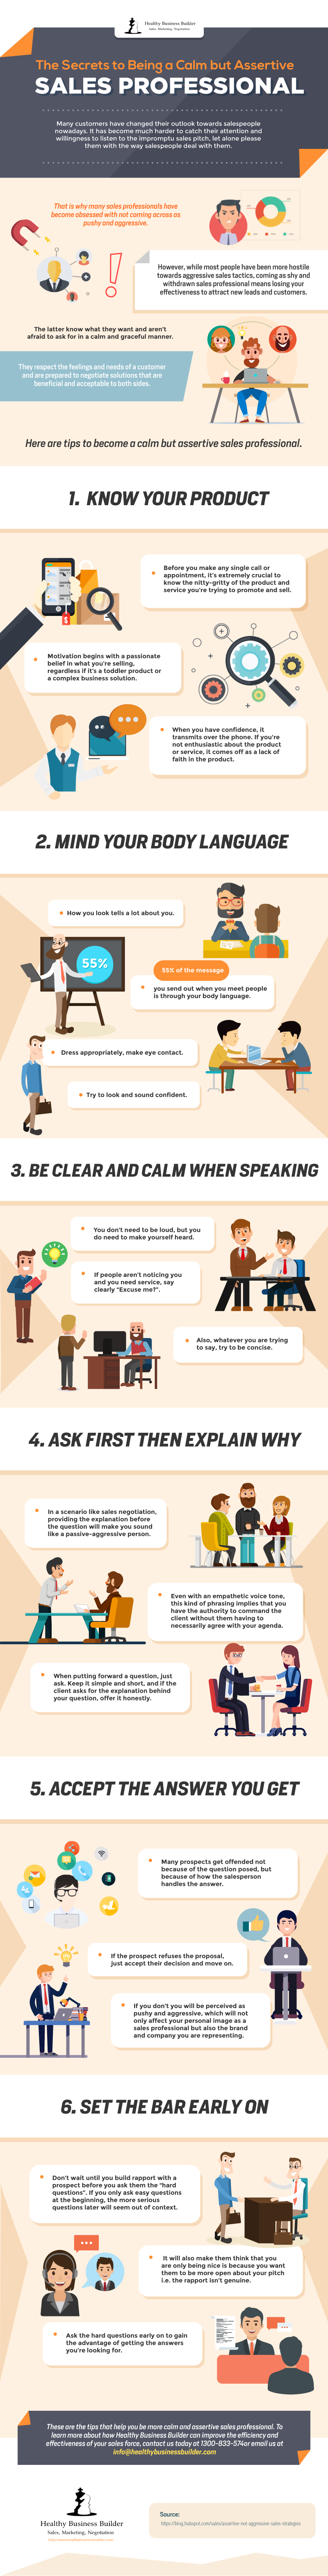 The Secrets to Being a Calm but Assertive Sales Professional